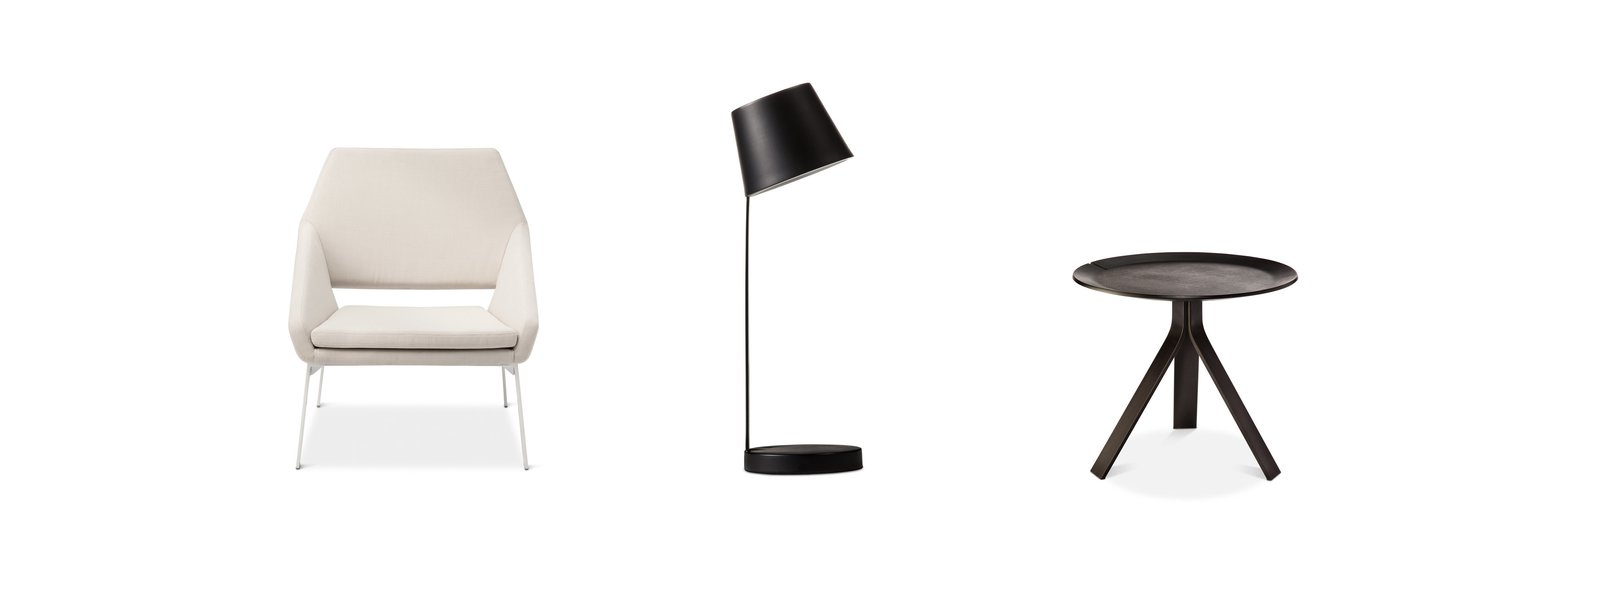 Photo 1 of 6 in Dwell Leaps Off the Page With a New Collection For Target